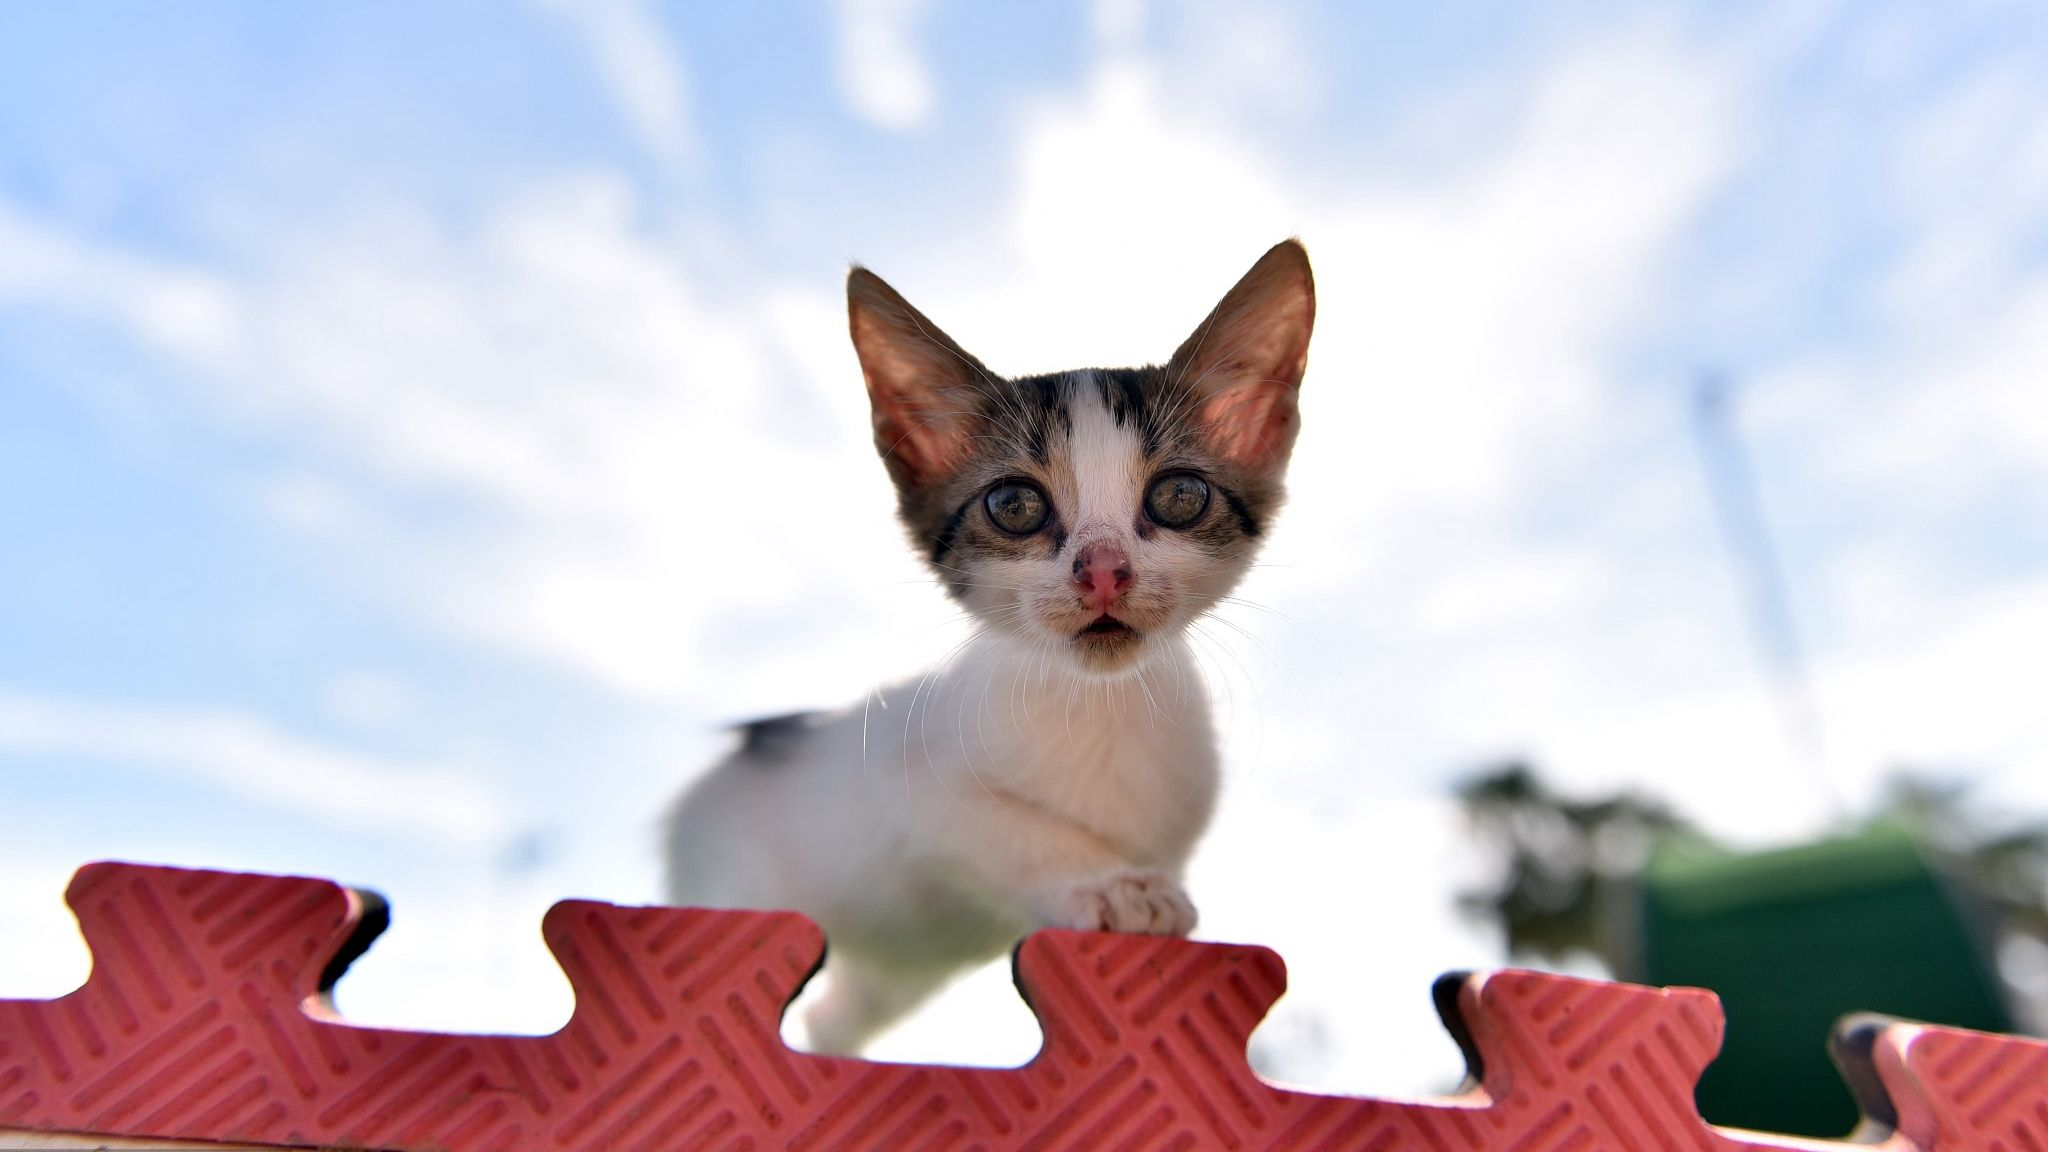 Welcome To The Meow Park A Cat Paradise In Turkey Located In Mersin The Park Is Built By The City Government For Those S Animal Stories Cute Animals Animals